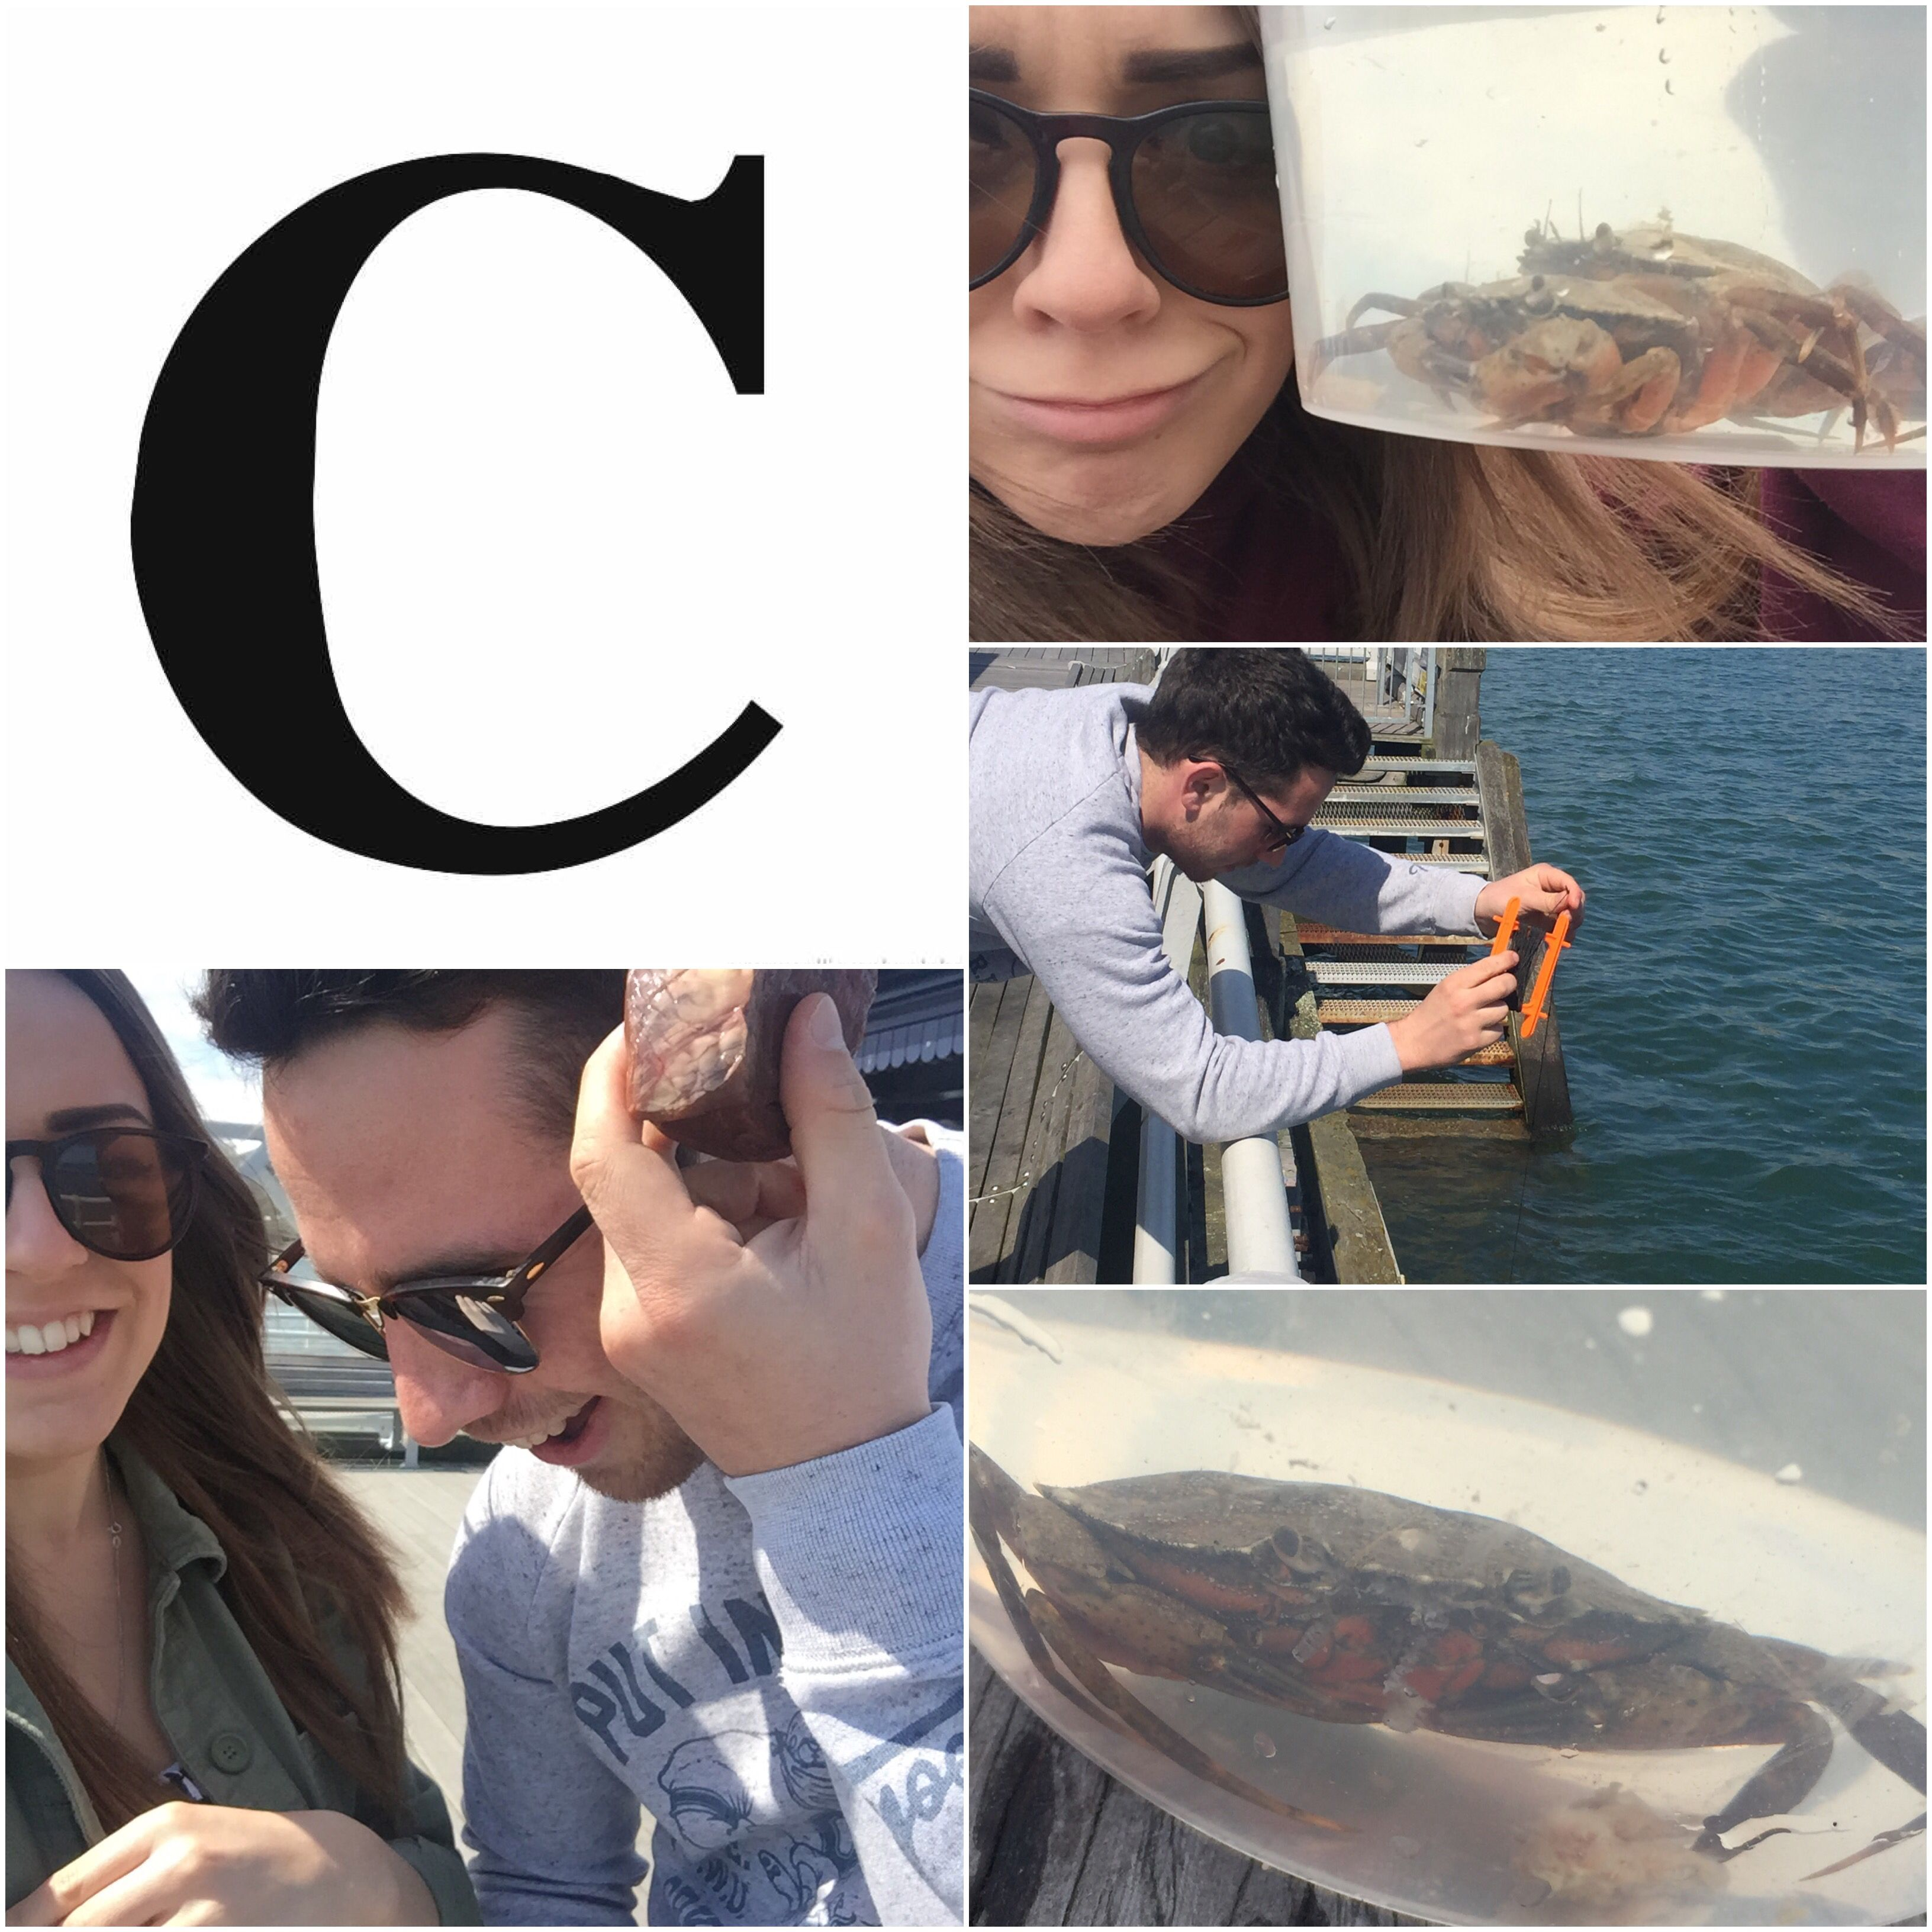 C is for Crab Fishing! Best day out at Beaumaris, Anglesey! Sunshine, laughter and fish and chips on the pier ❤️ #AlphabetDating